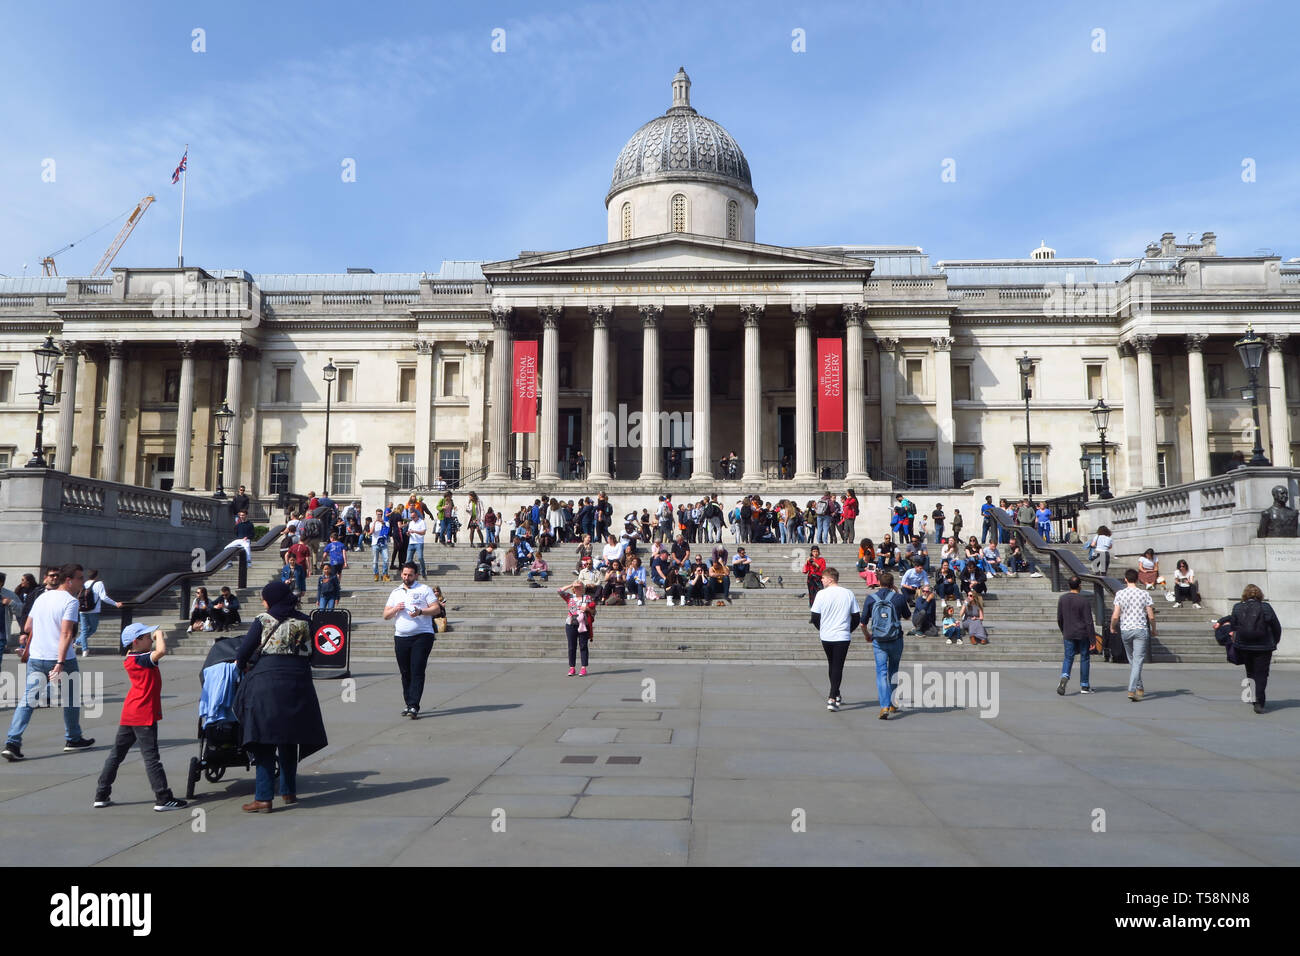 The National Gallery viewed from Trafalgar Square, London Stock Photo